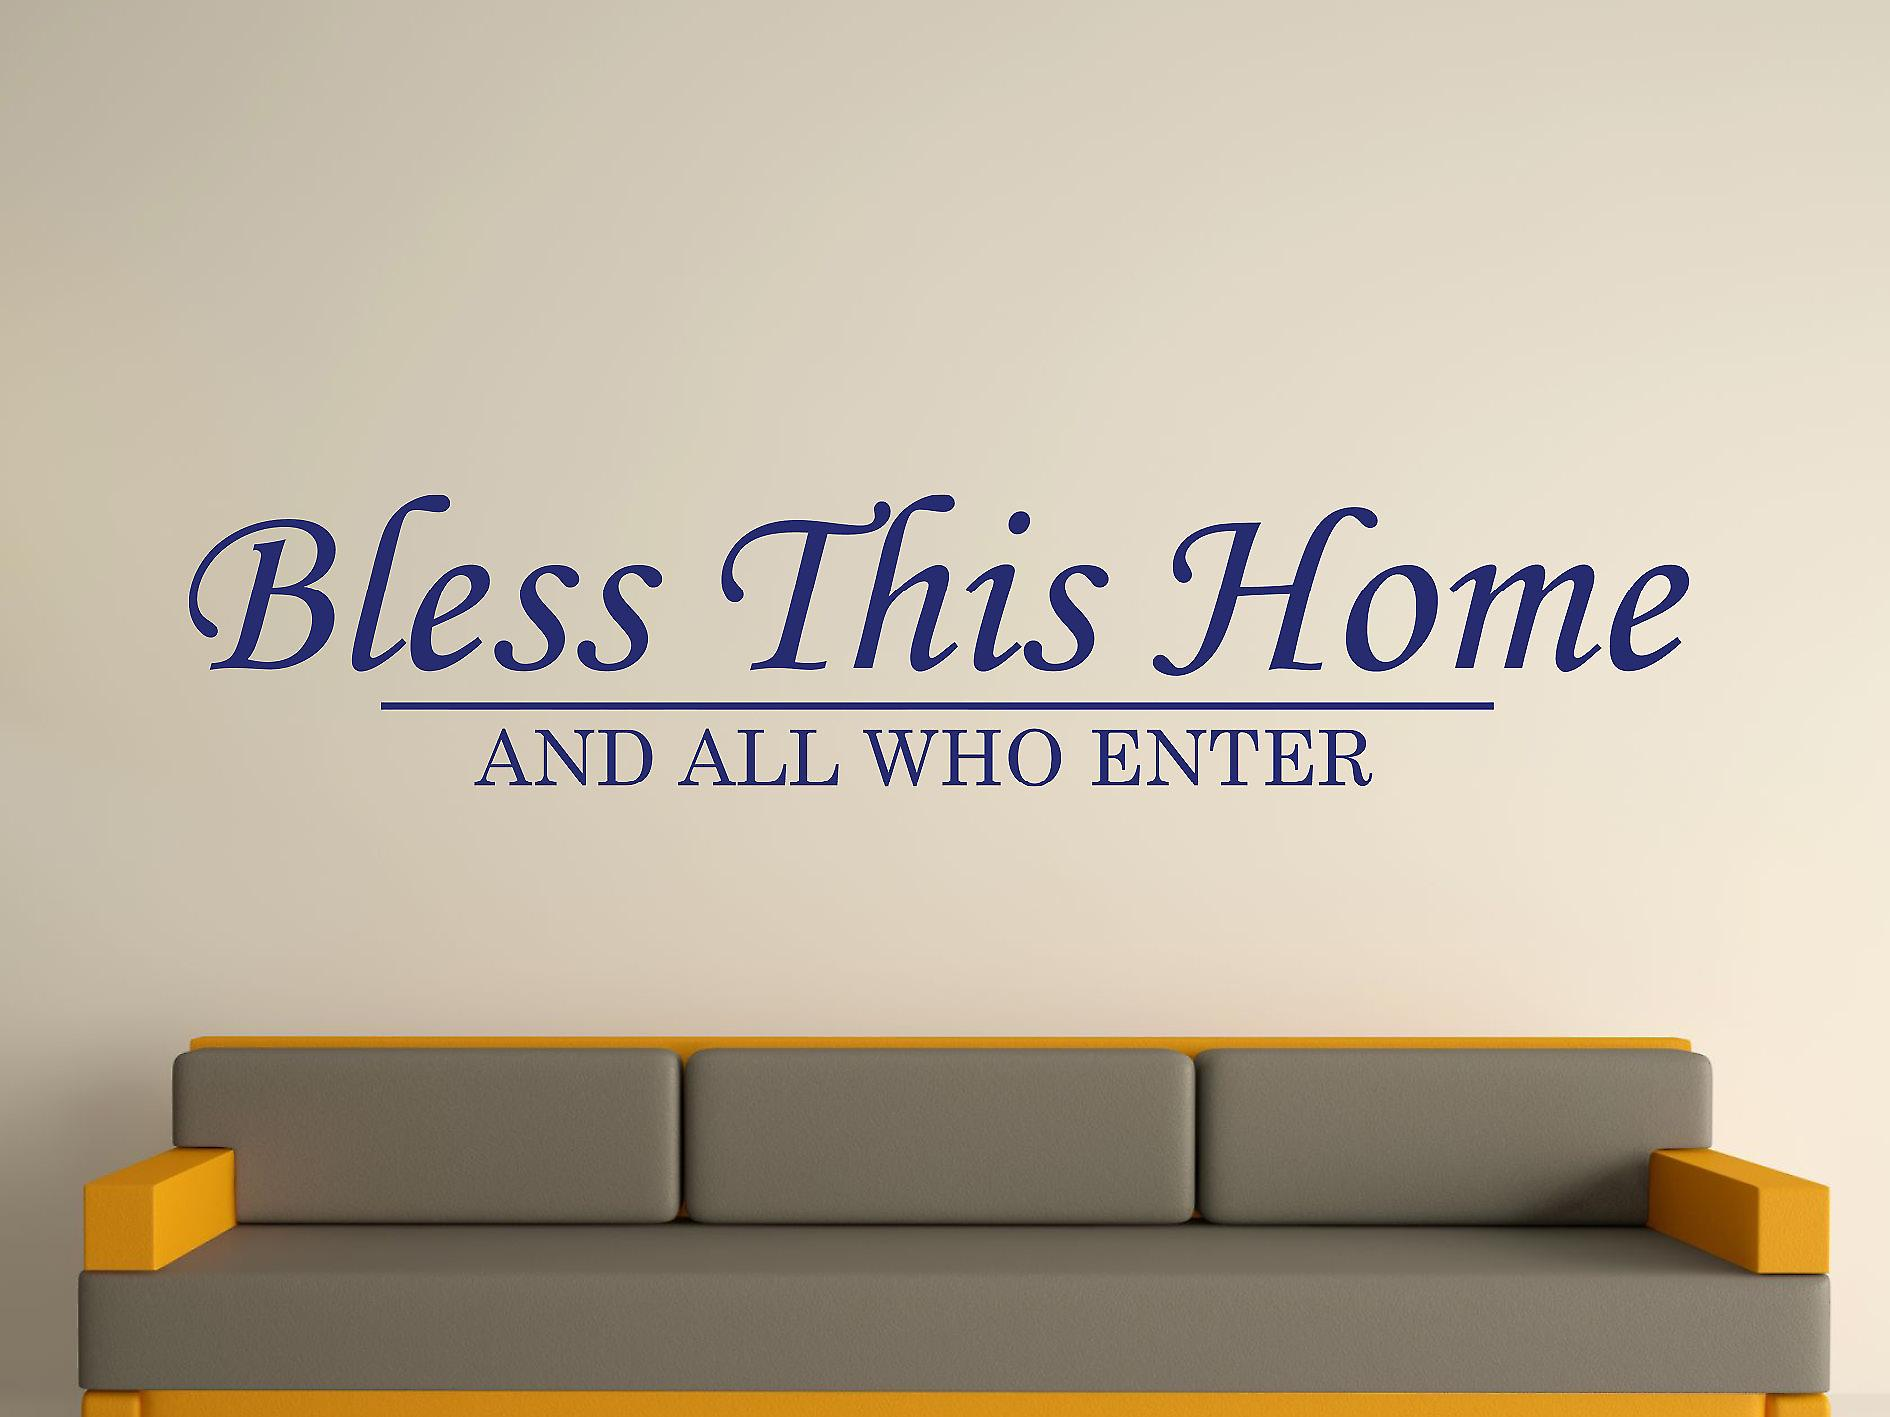 Bless This Home Wall Art Sticker - Ultra Blue